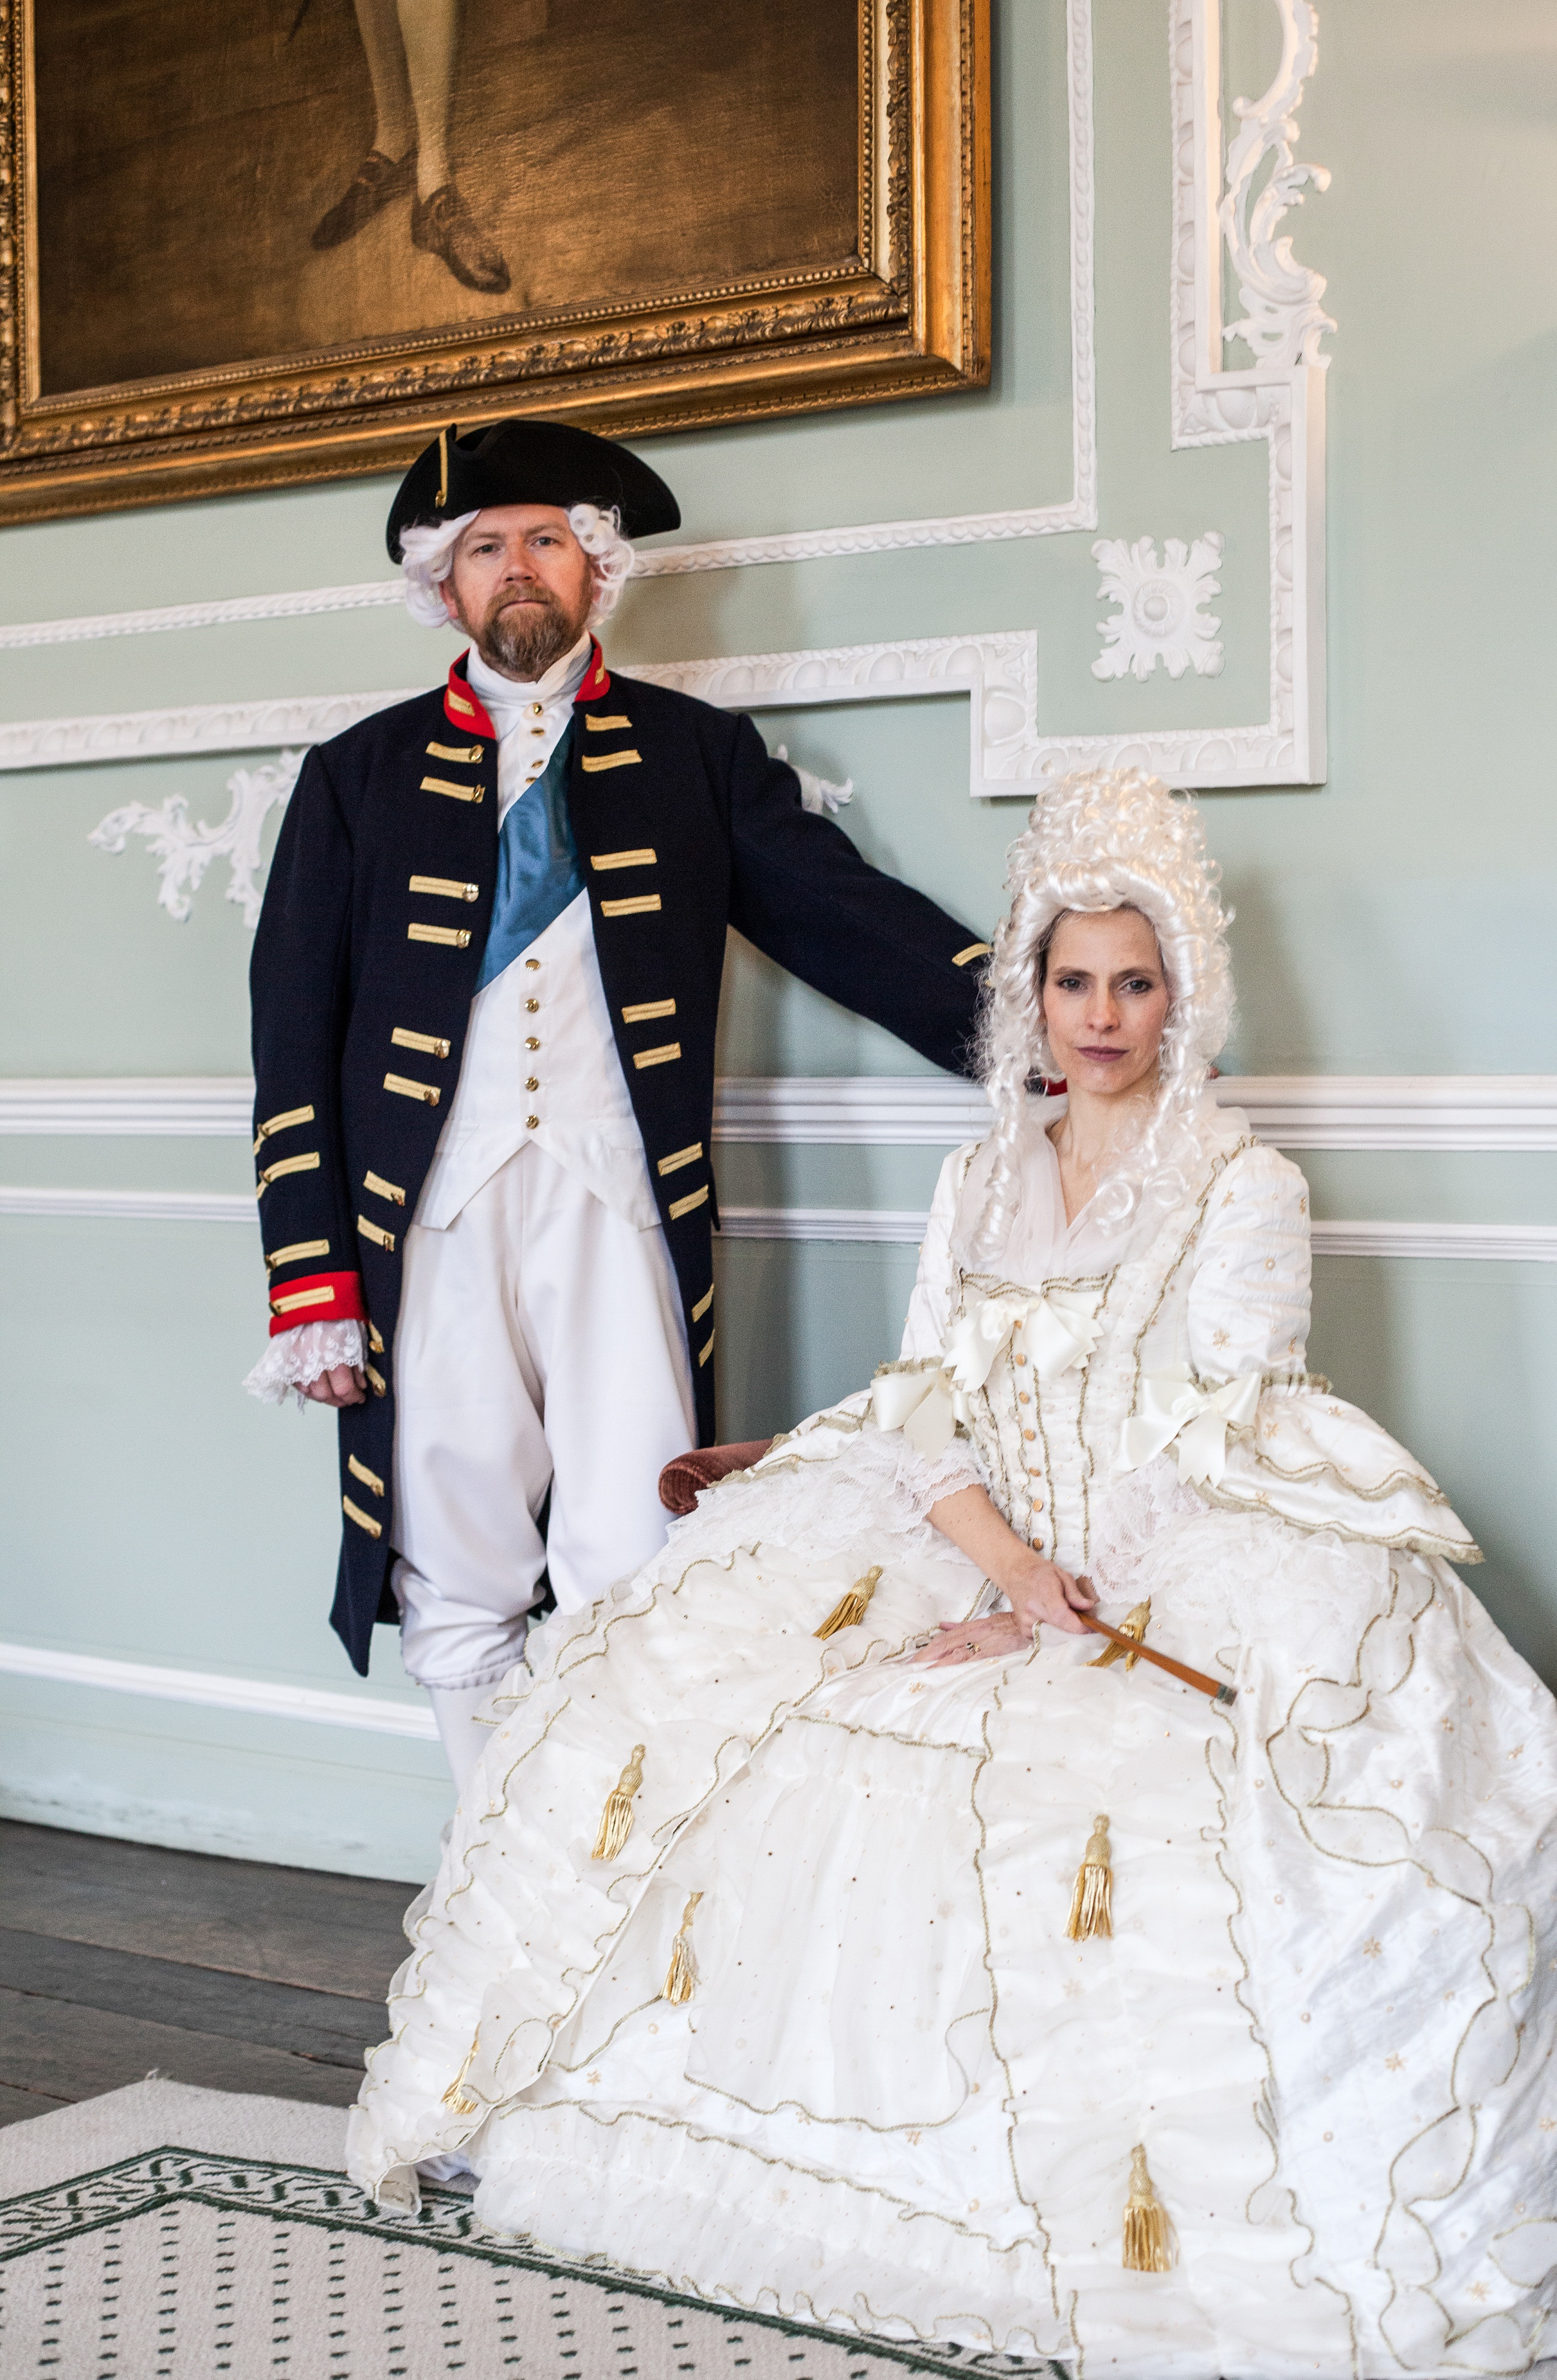 Jonathan Darby and Claire Worboys as King George and Queen Charlotte in the Castle's Georgian Saloon